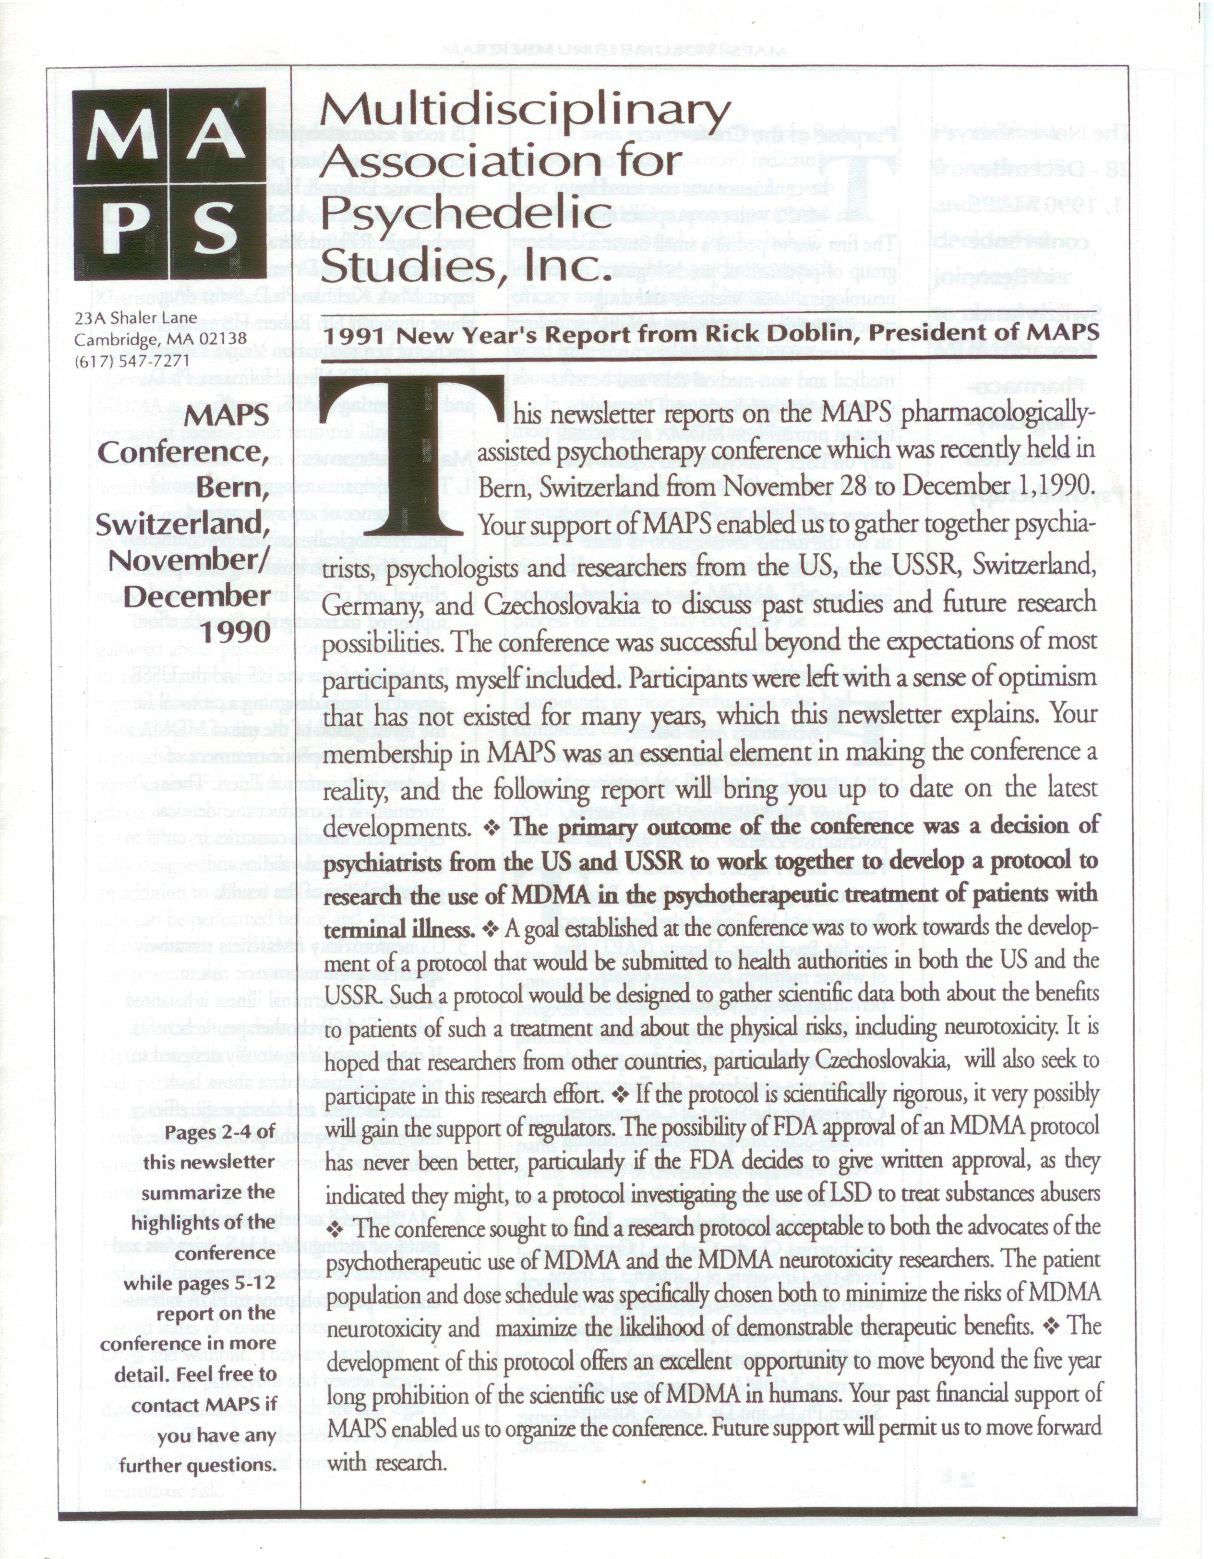 MAPS Bulletin Winter 1990/91: Vol. 02, No. 1 MAPS' Swiss Pharmacologically-Assisted Psychotherapy Conference